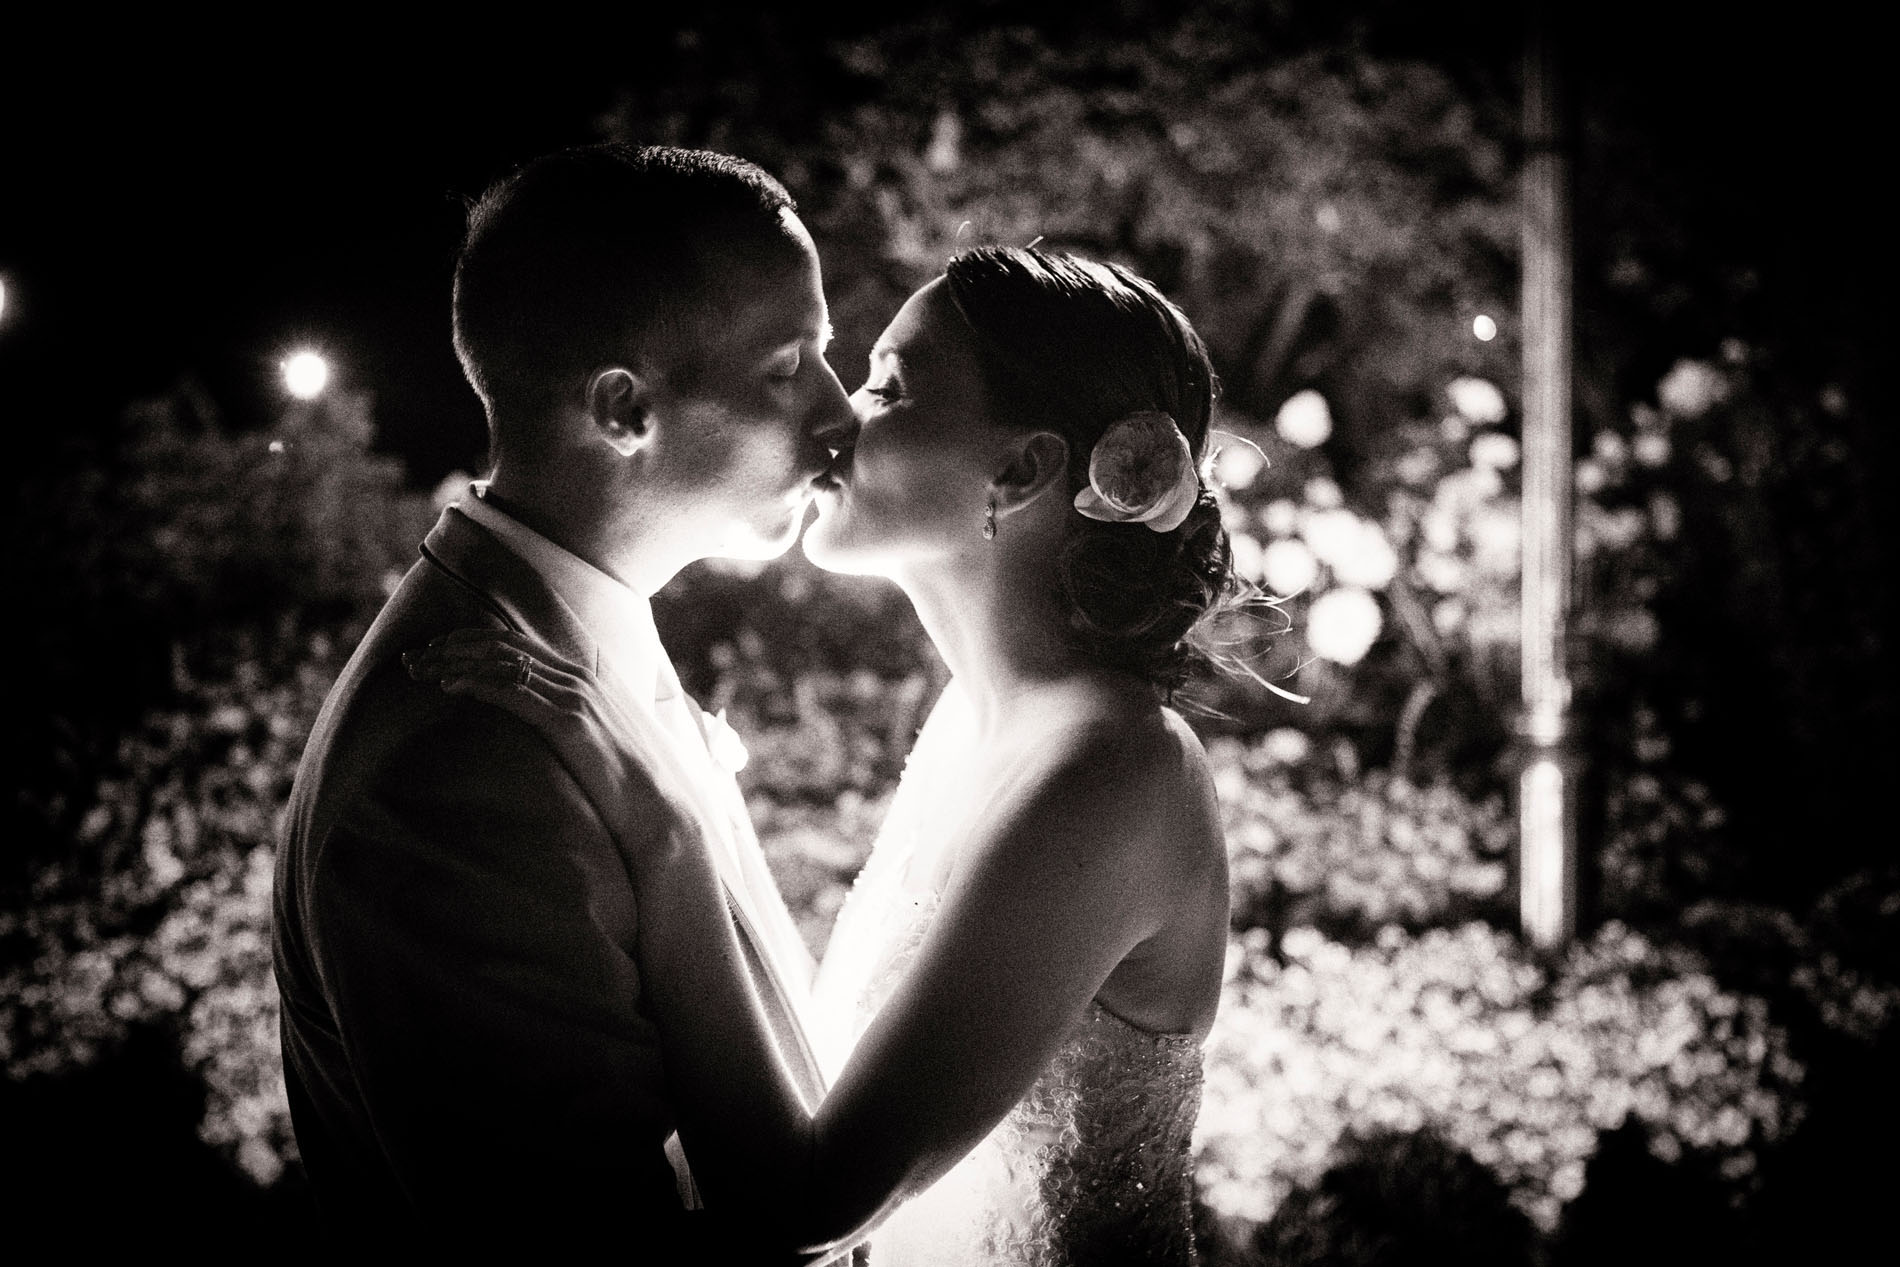 Favorite Wedding Pictures from Wentworth - couple kissing in the garden